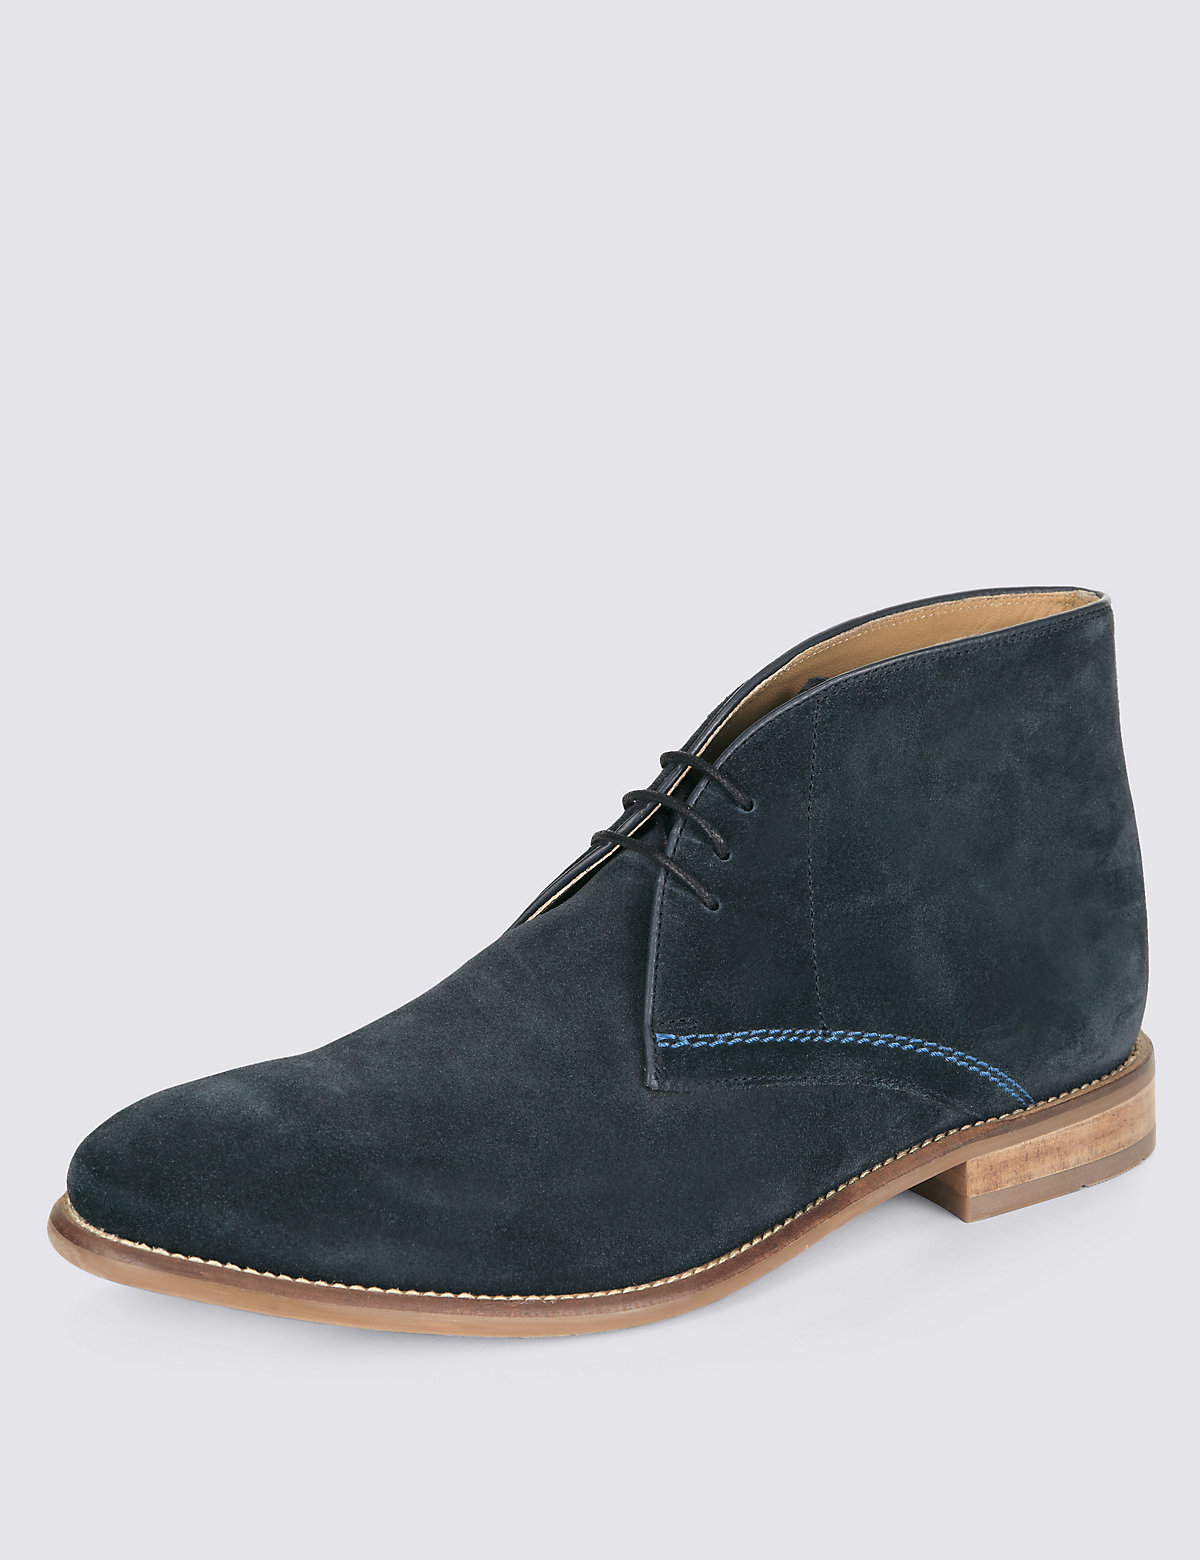 Suede Chukka Boots by Marks \u0026 Spencer